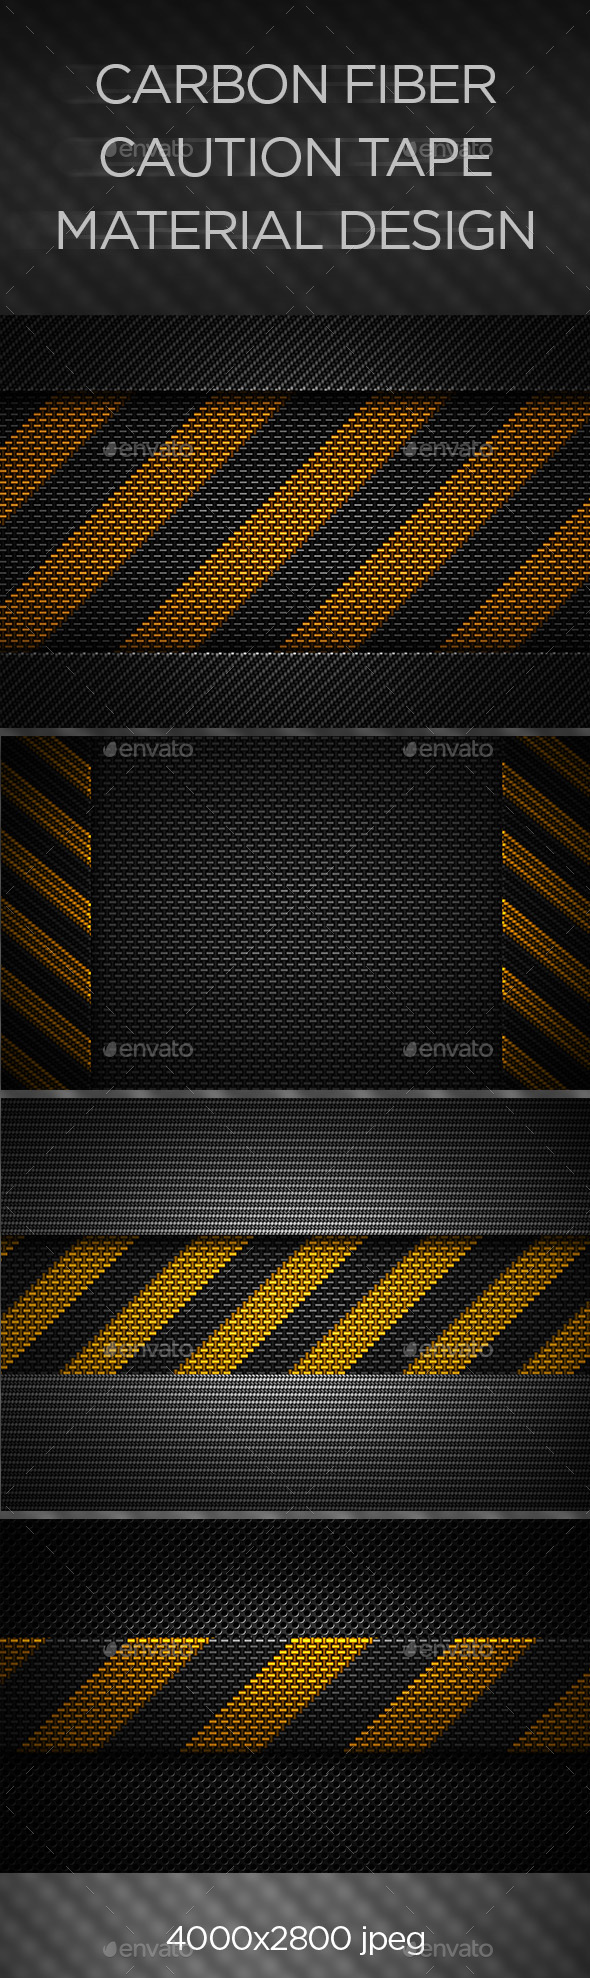 Carbon Fiber Caution Tape Texture - Urban Backgrounds